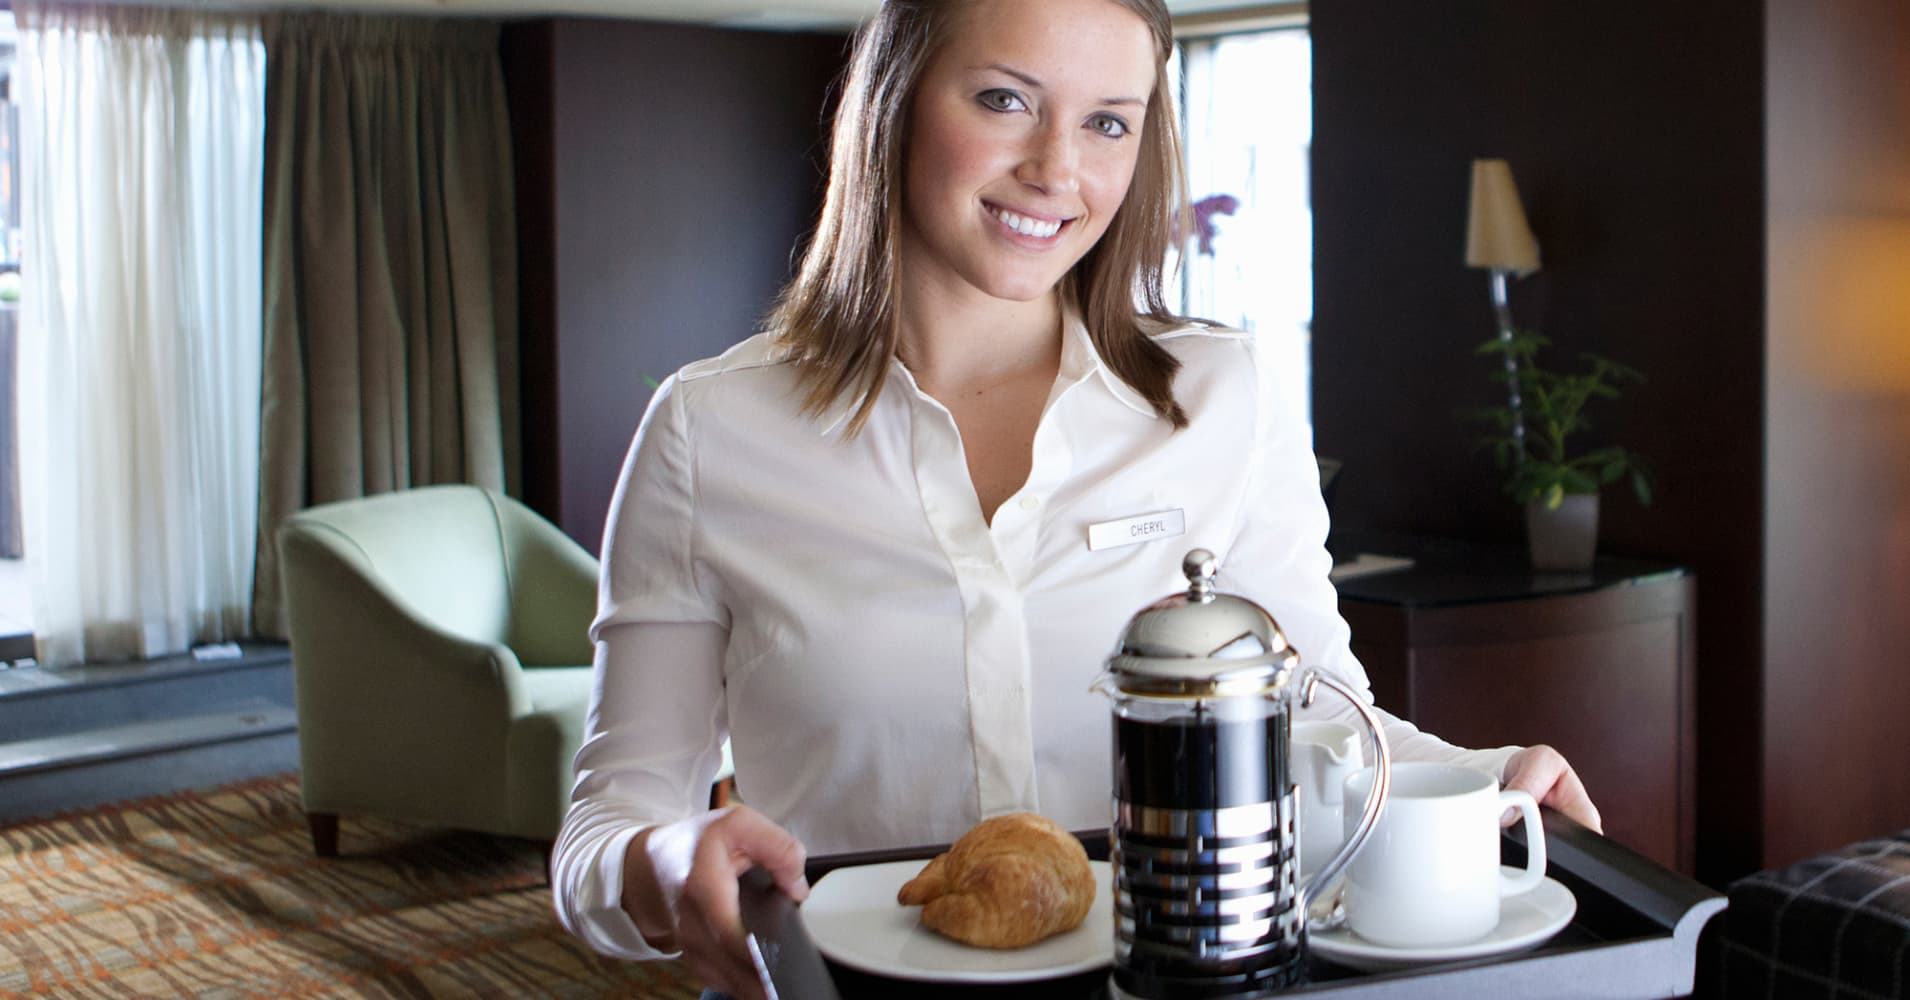 Room Service: Hilton Guests May Still Get Room Service